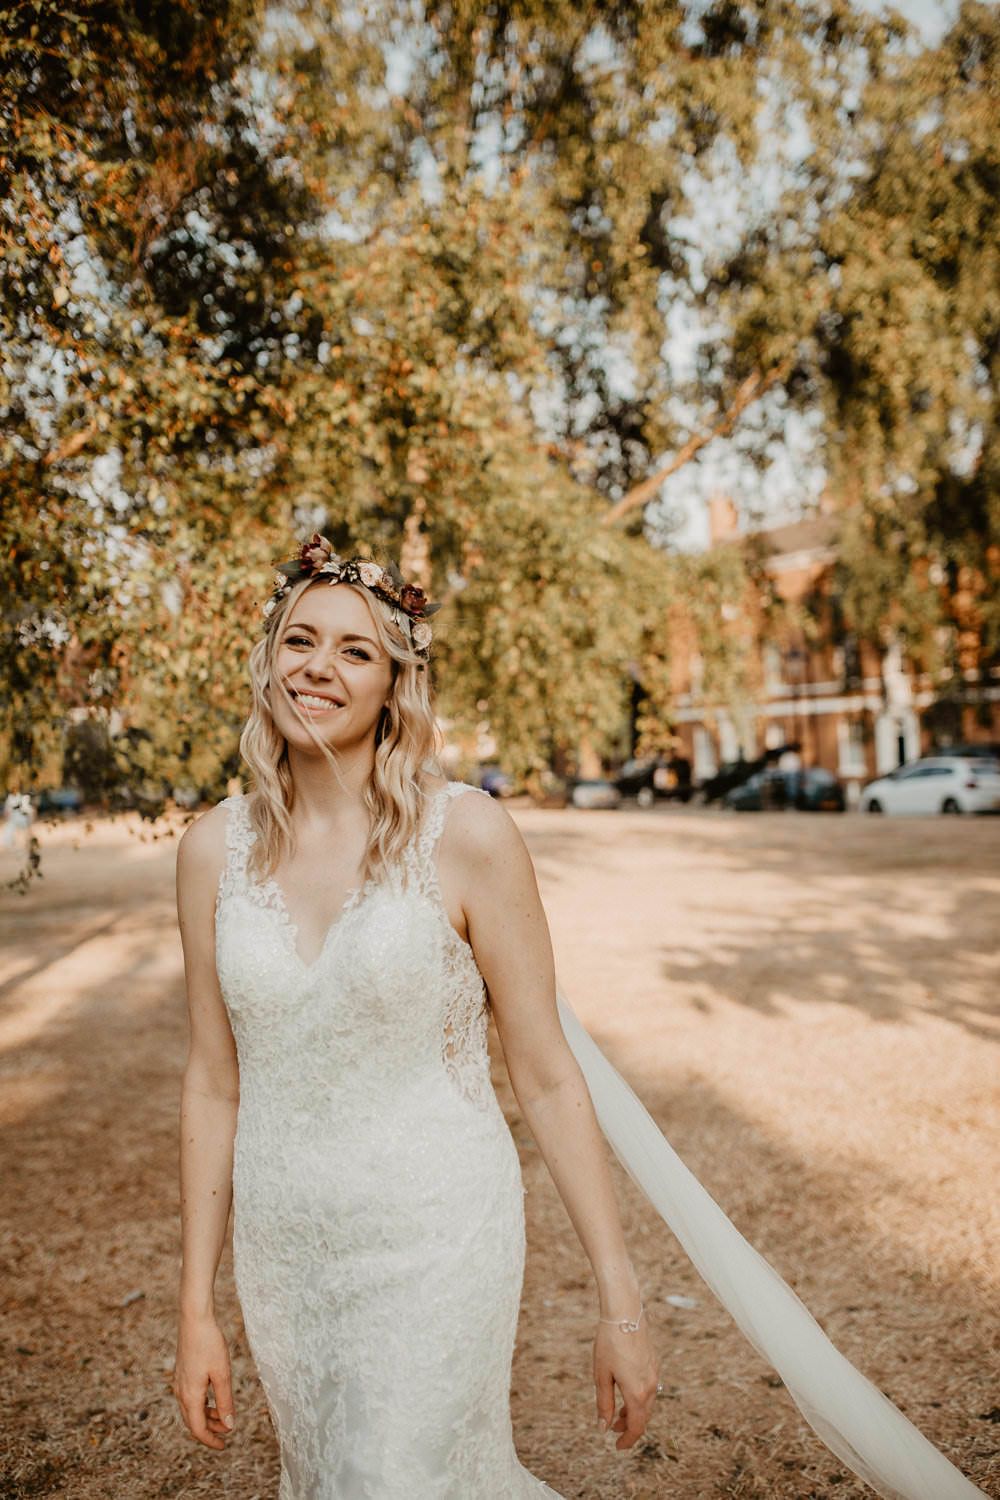 Bride Bridal Dress Gown Straps Lace Fit Flare Mori Lee Sheer Low Back Flower Crown Hair Norwich Cathedral Wedding Camilla Andrea Photography